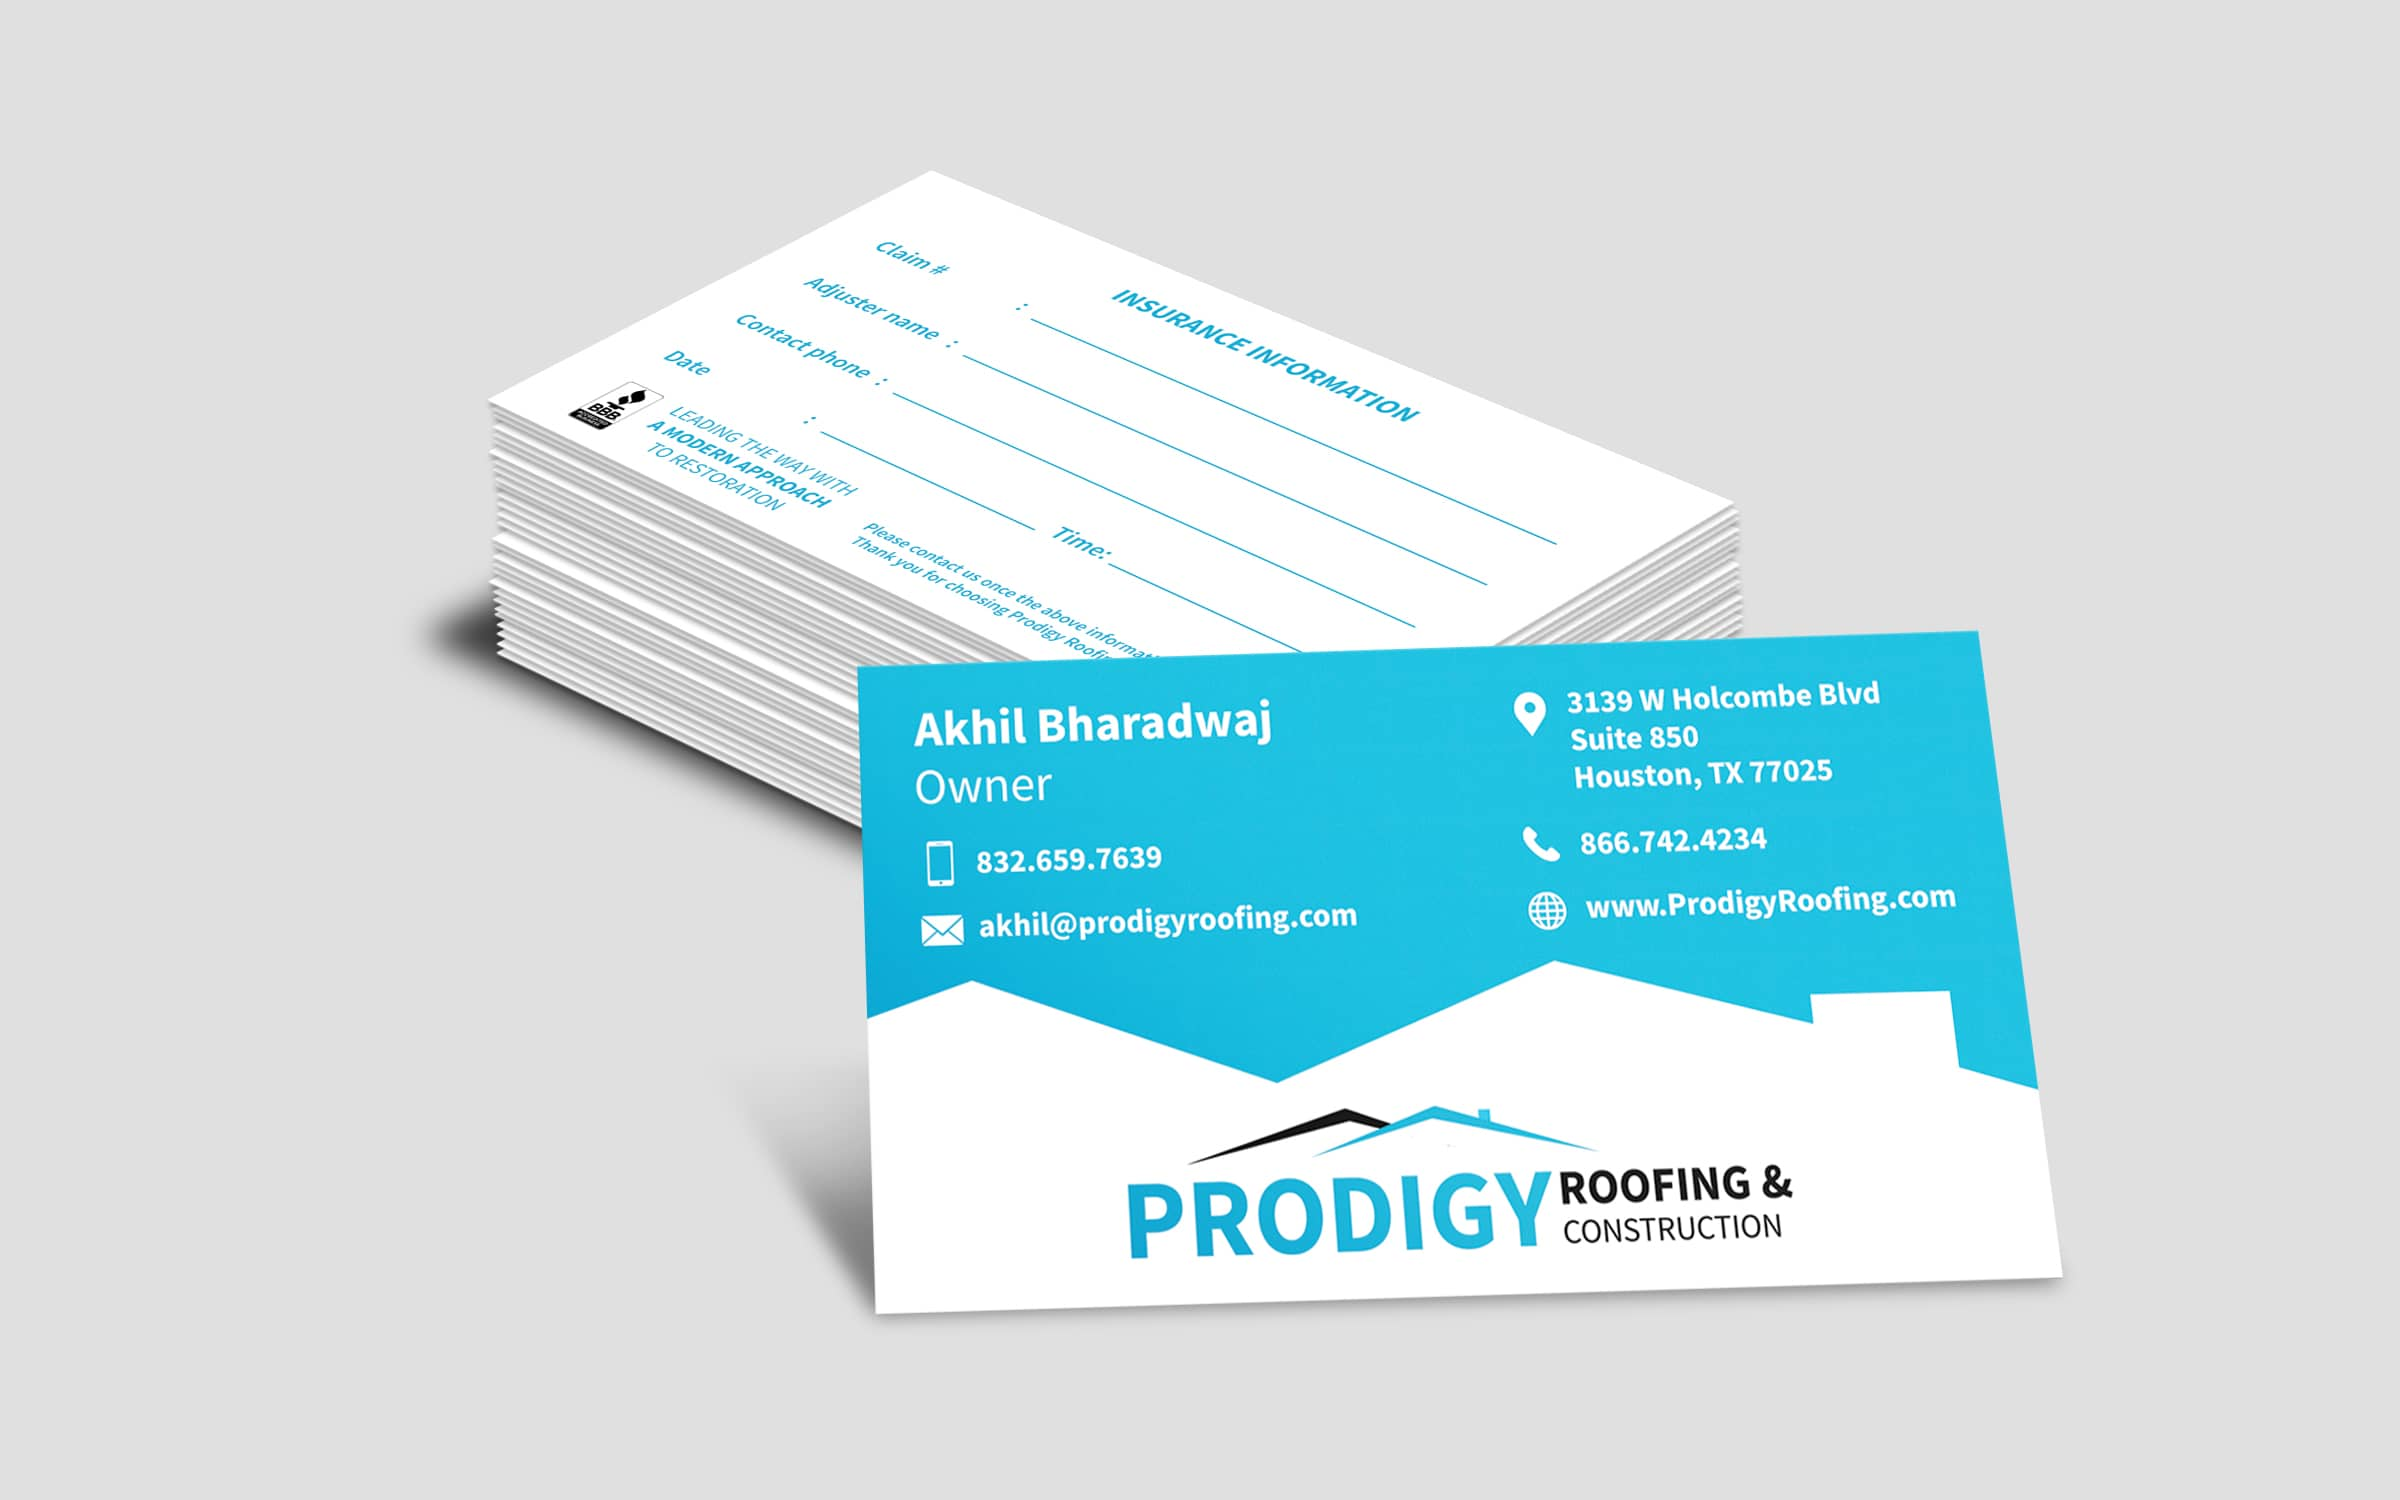 prodigy roofing system business cards design